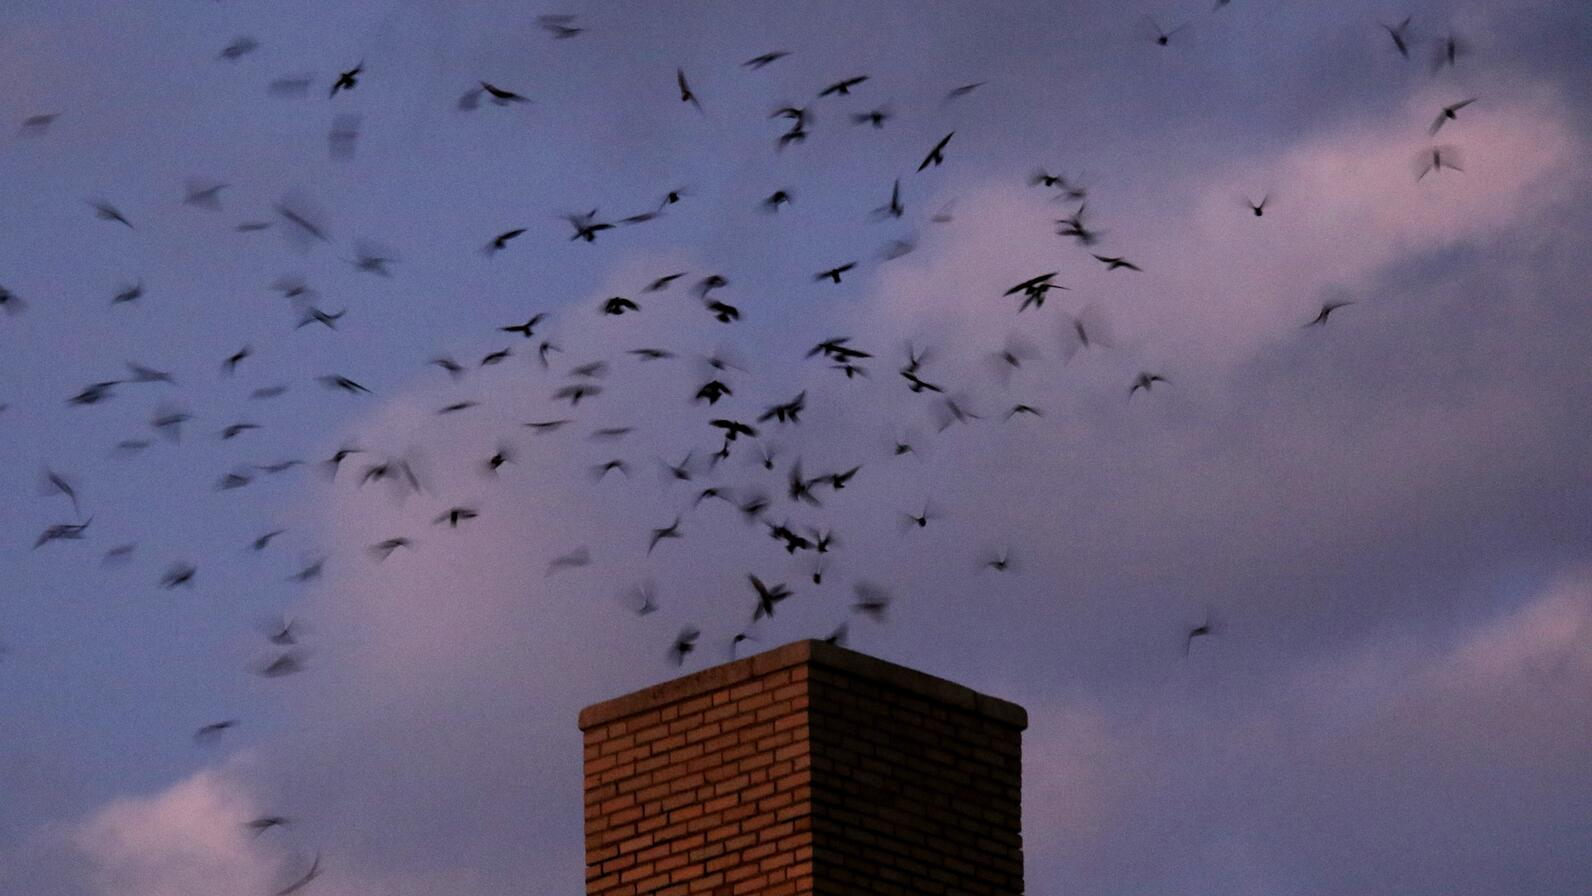 Chimney Swifts flock at a roost at dusk.